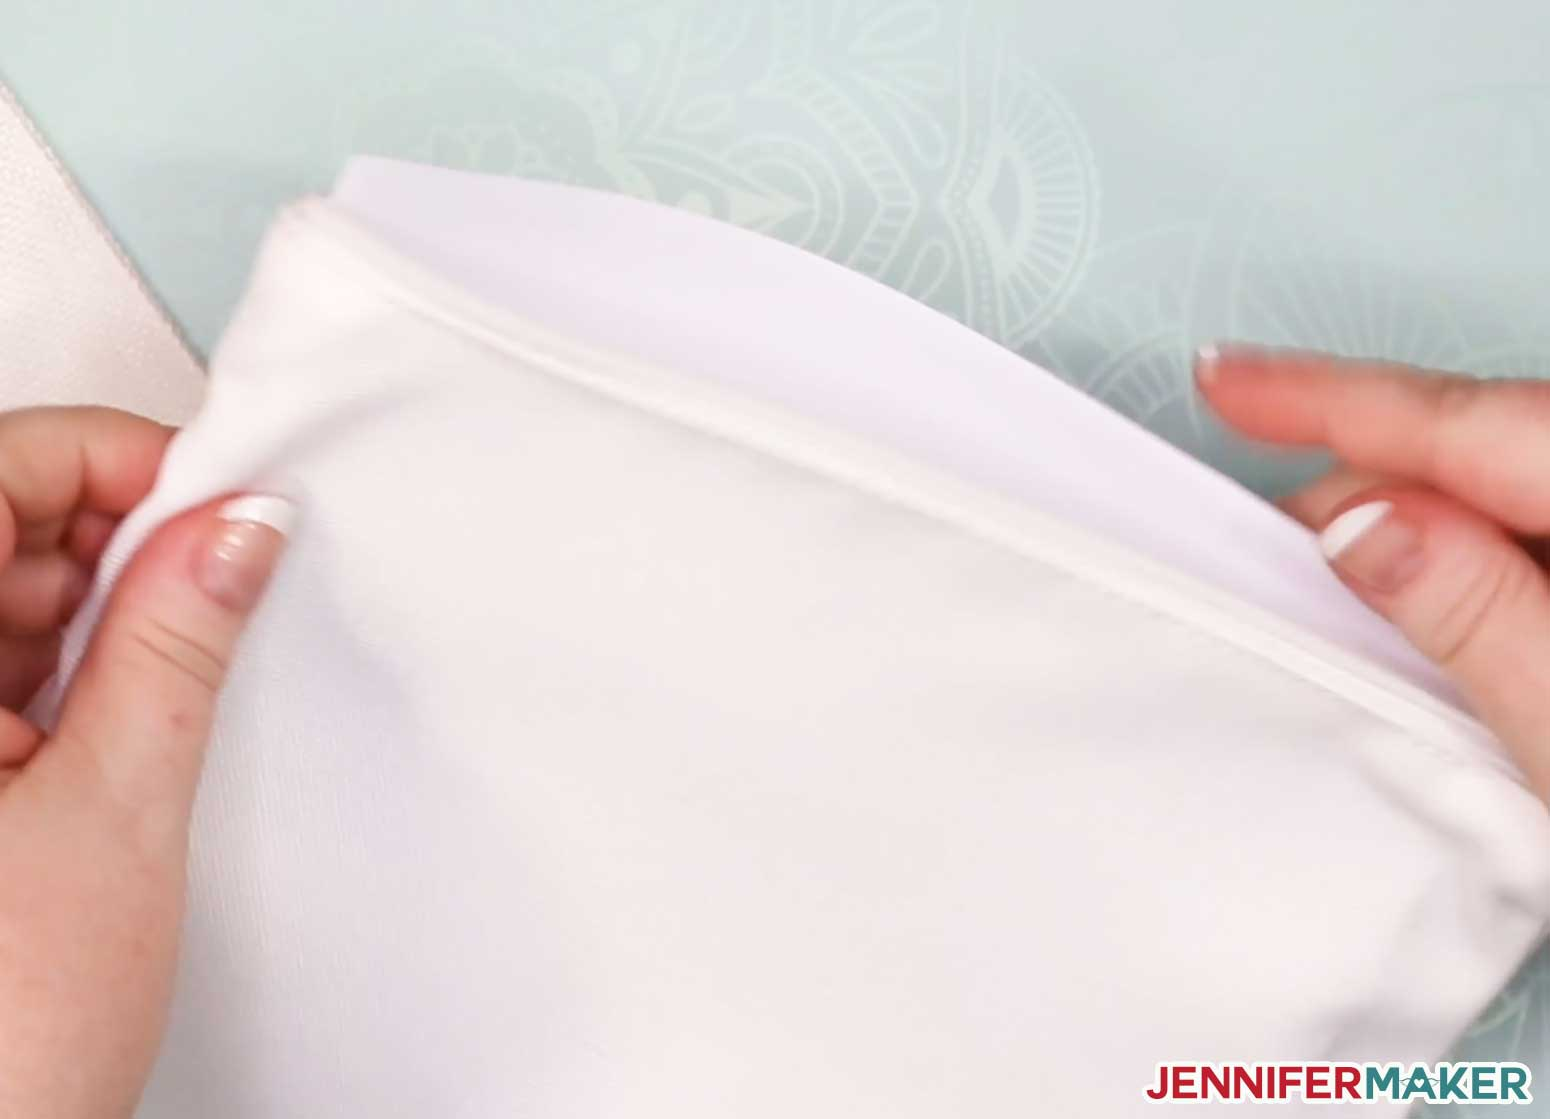 Put a piece of white cardstock inside the zippered pouch to prevent bleedthrough